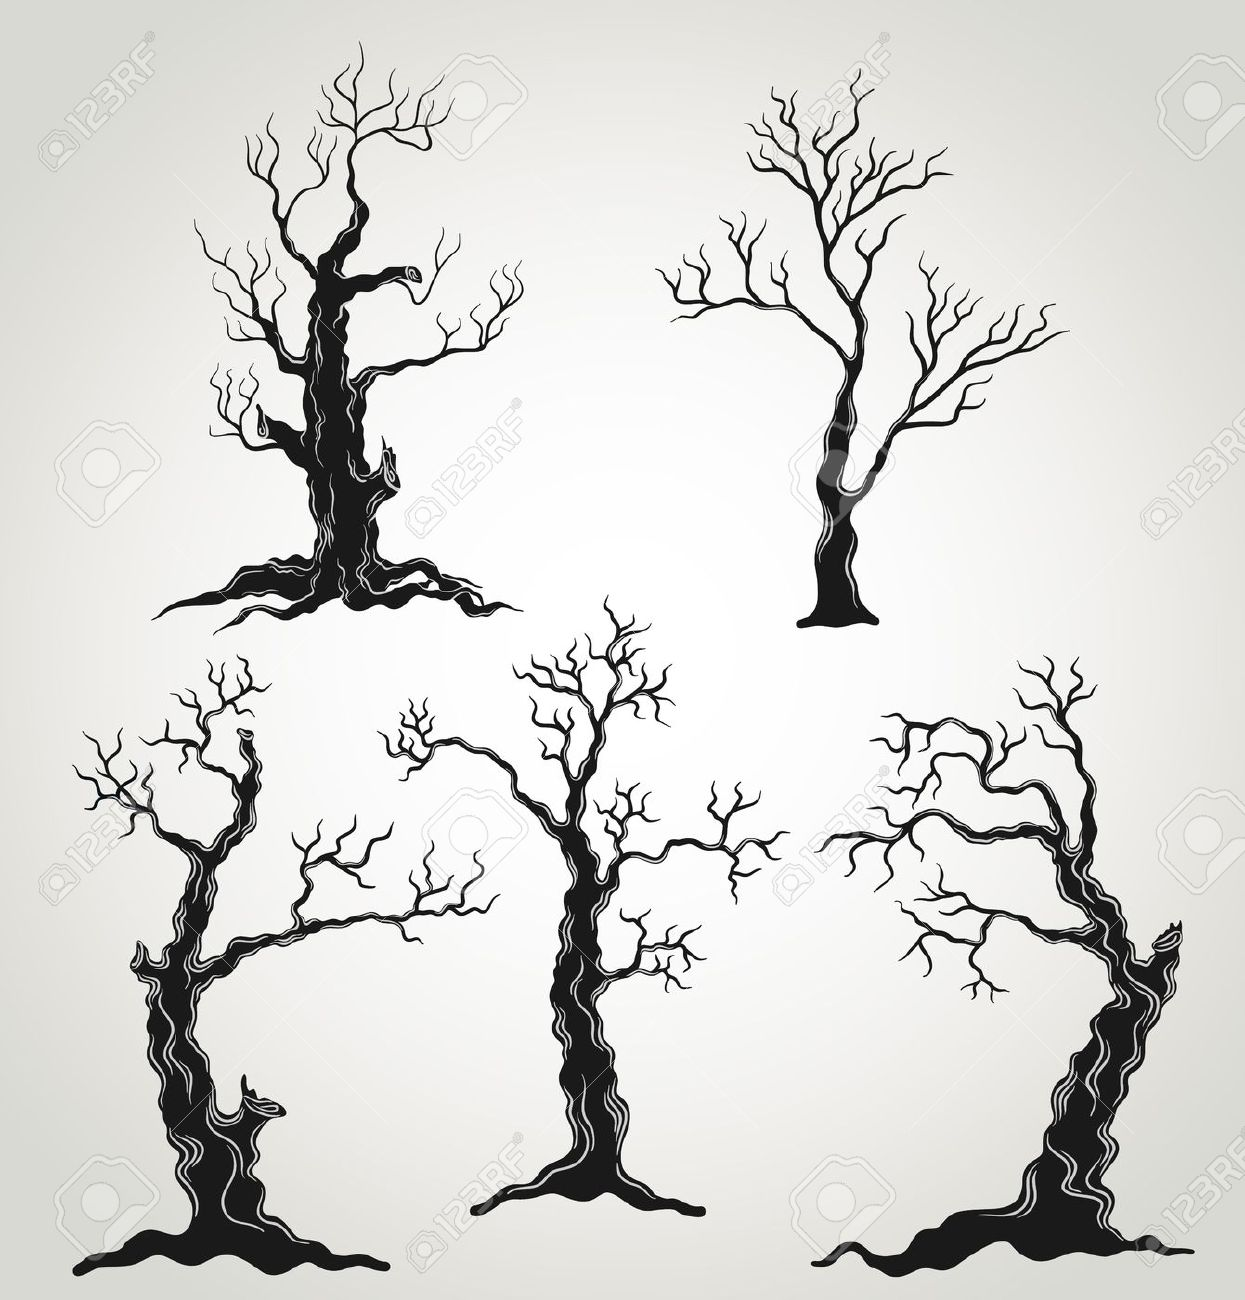 Halloween Gnarled Trees Silhouette Clipart.